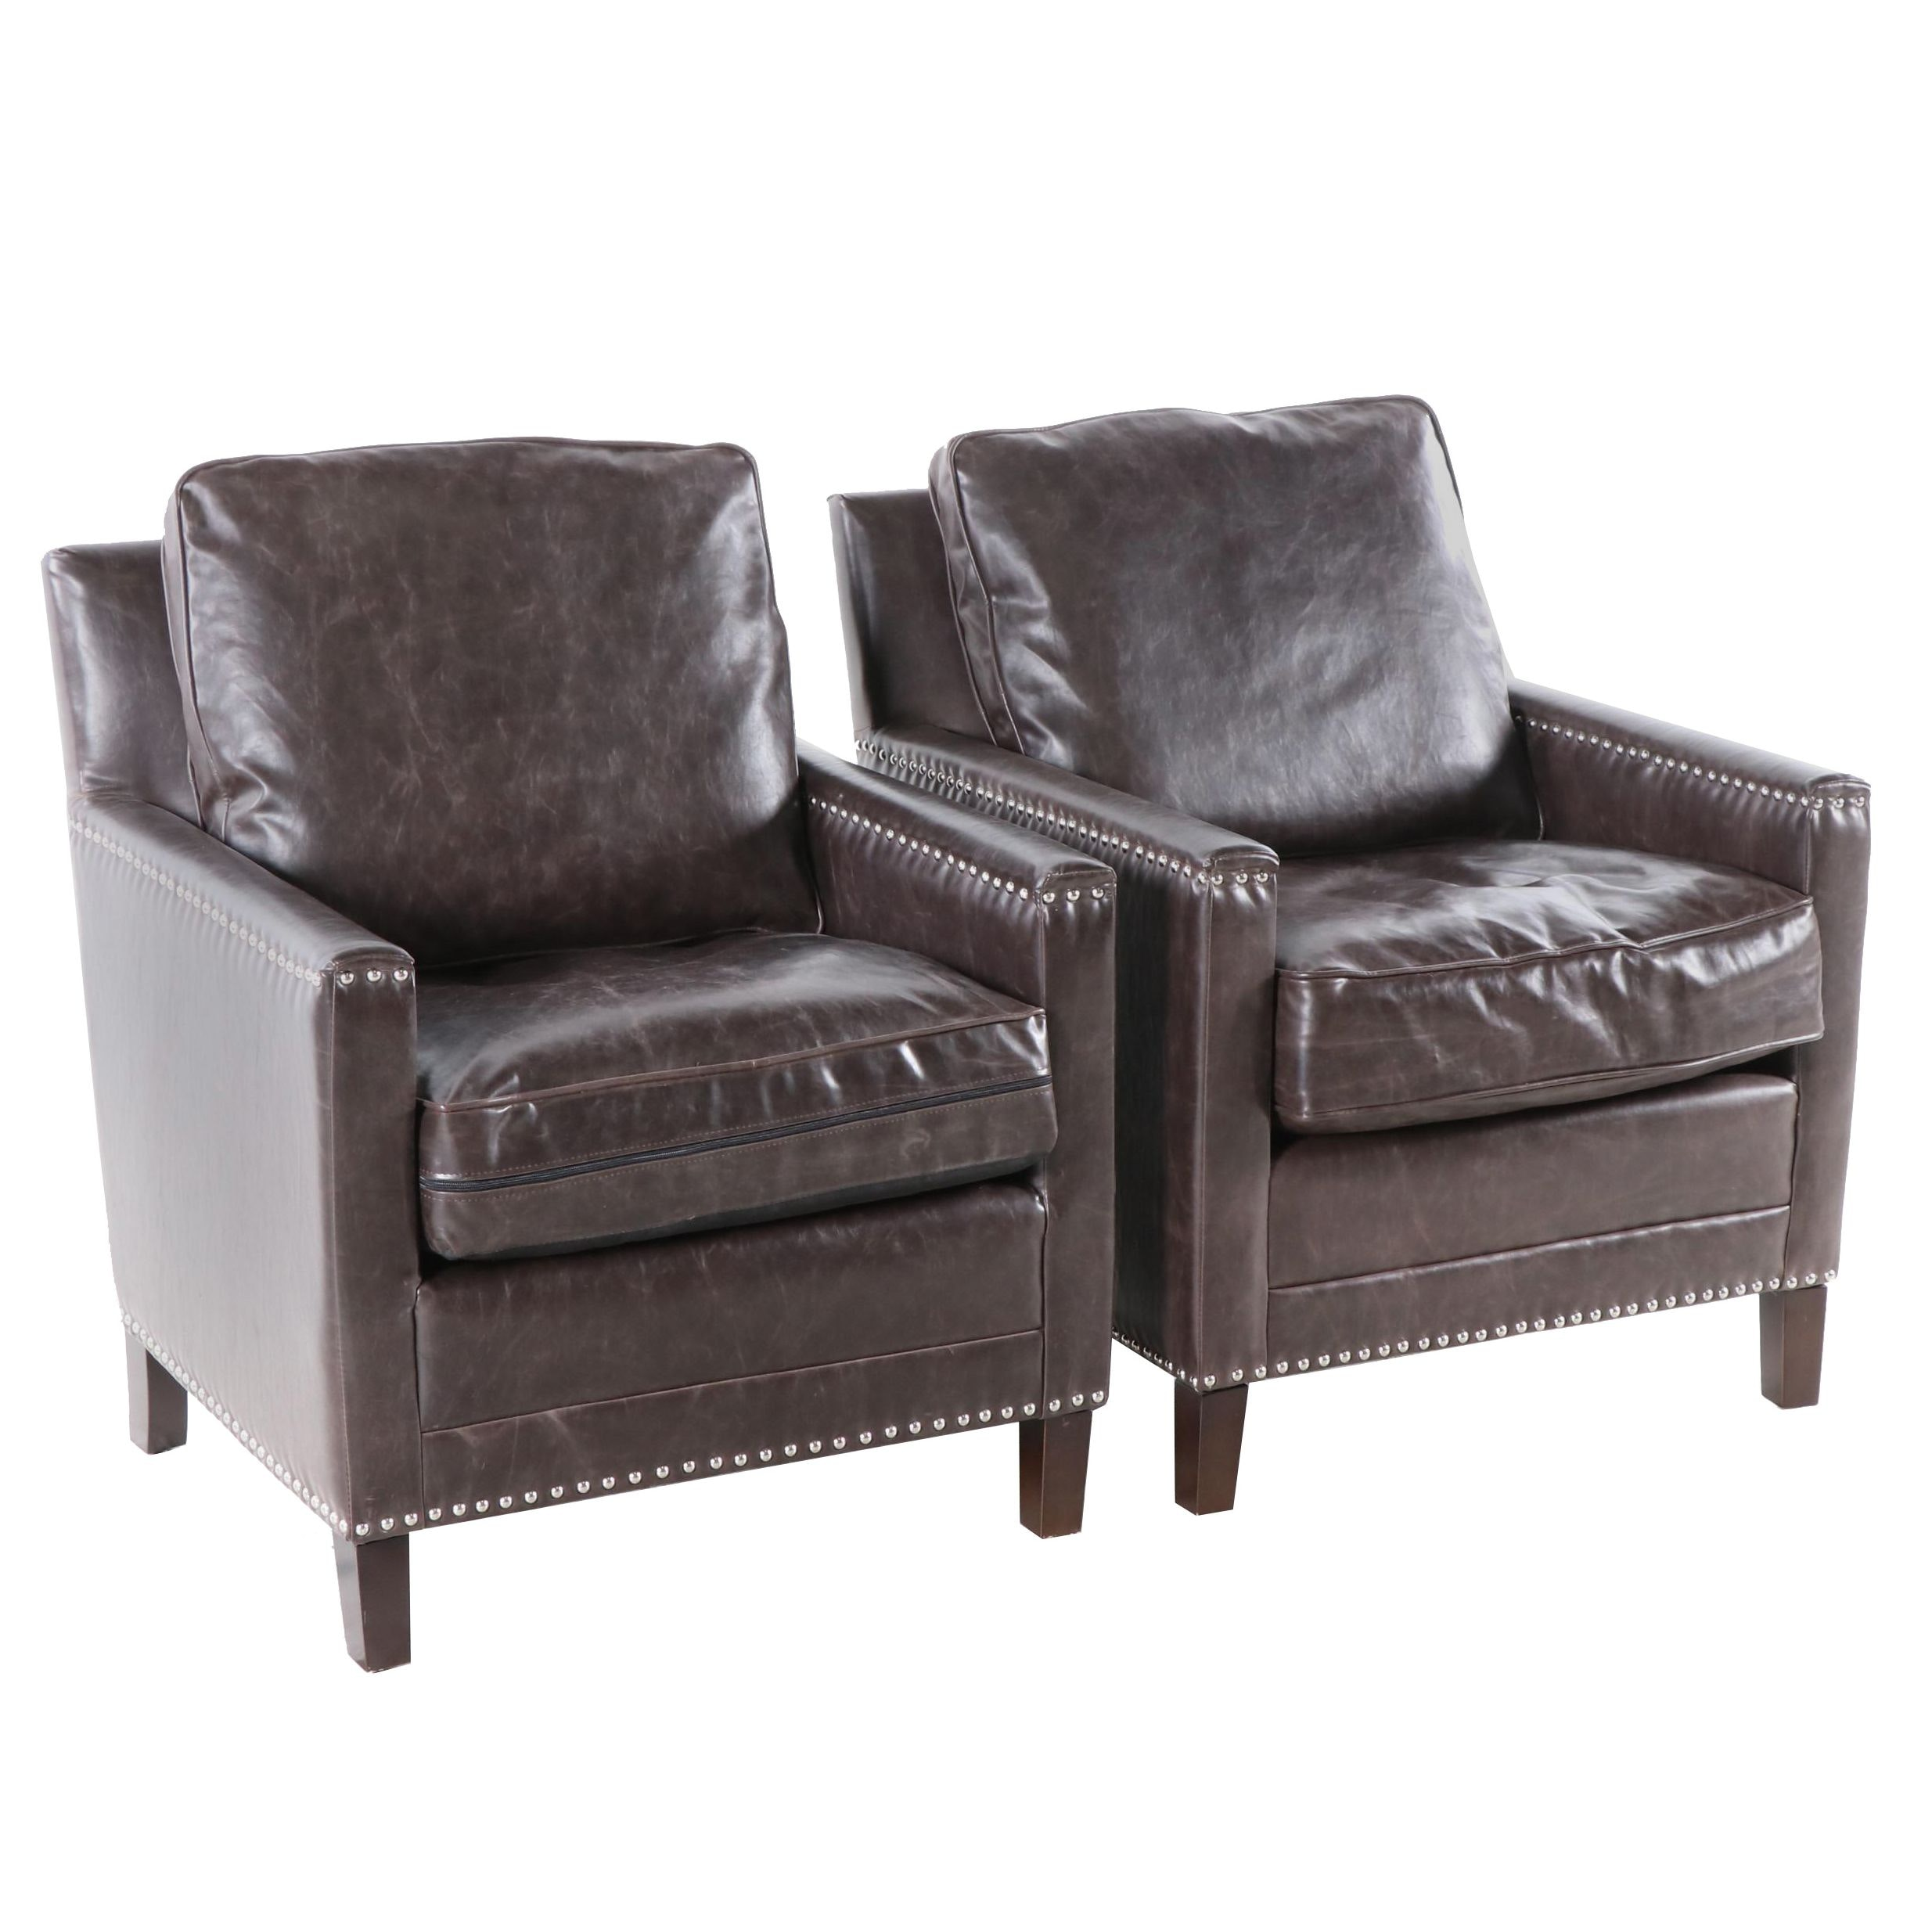 Contemporary Faux Leather Chairs